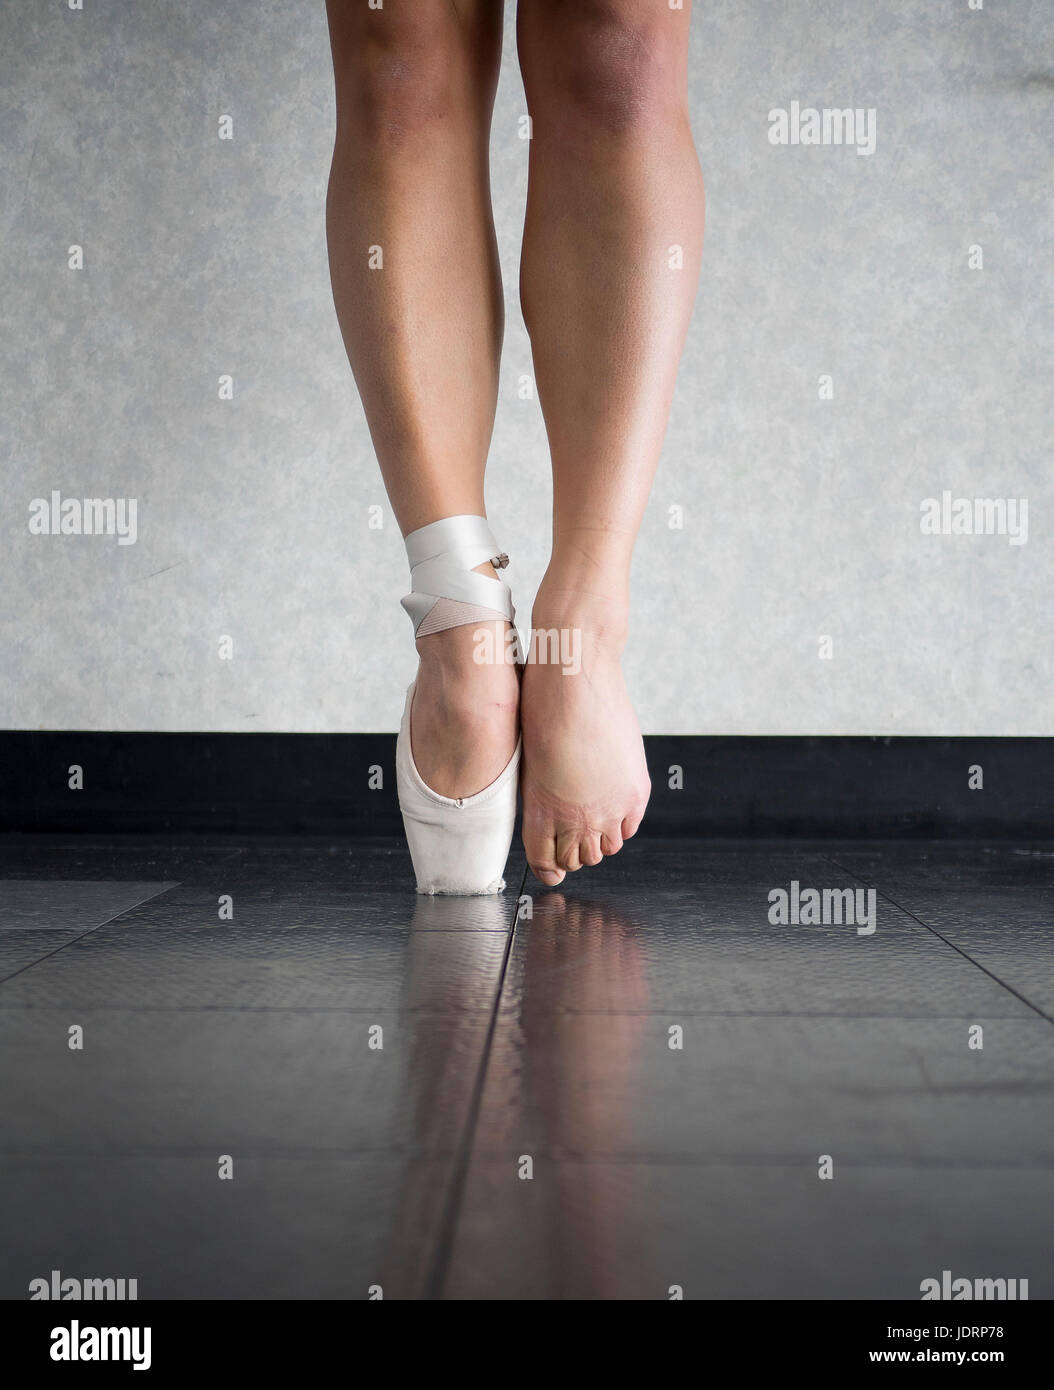 A ballerina's feet- behind the scenes - Stock Image